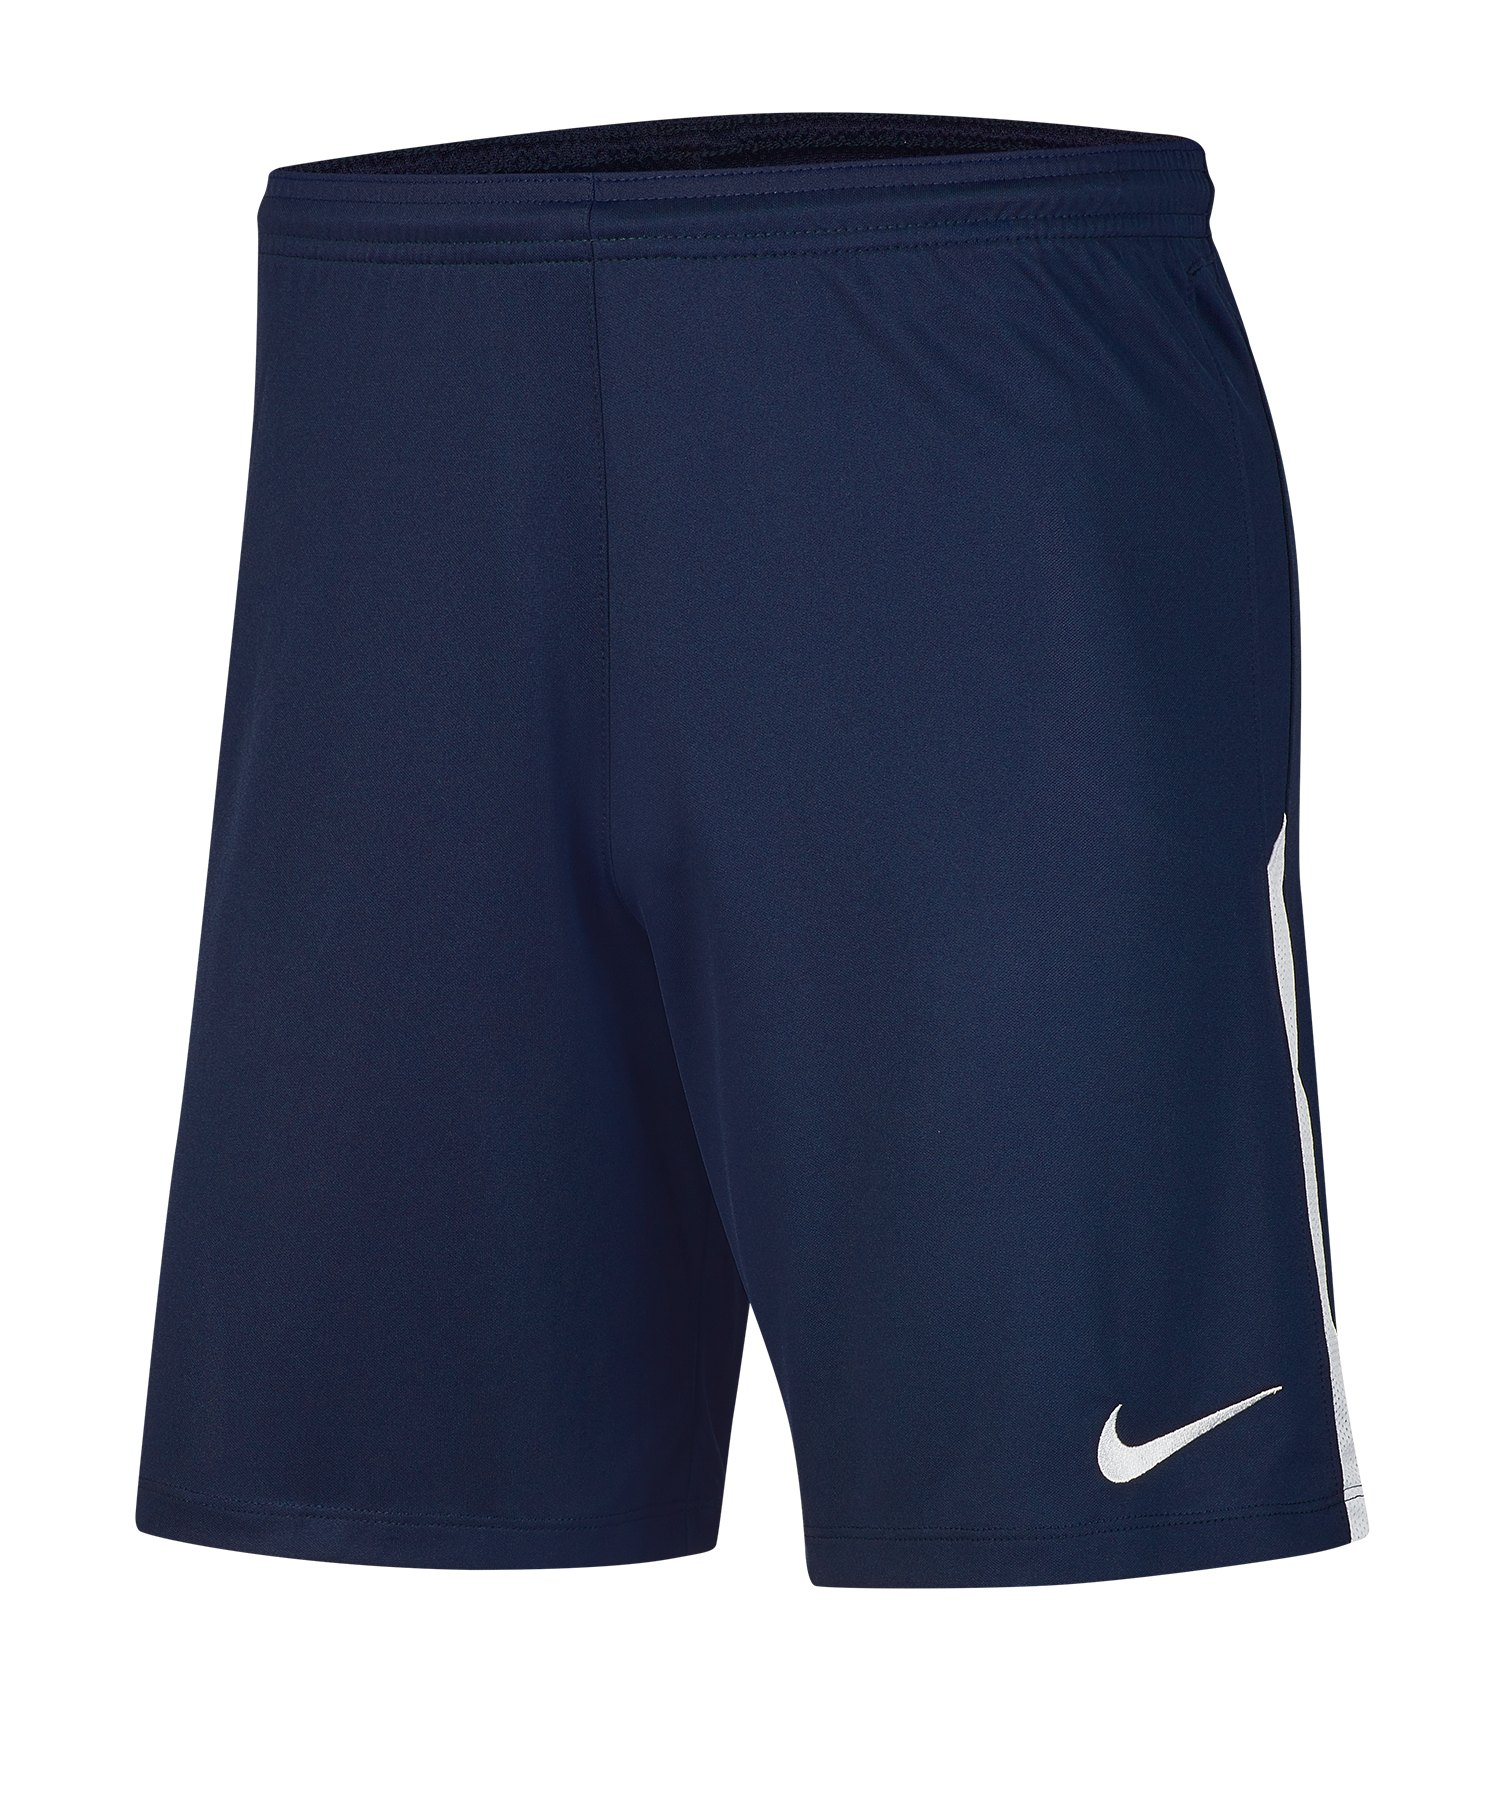 Nike League Knit II Short Blau Weiss F410 - blau